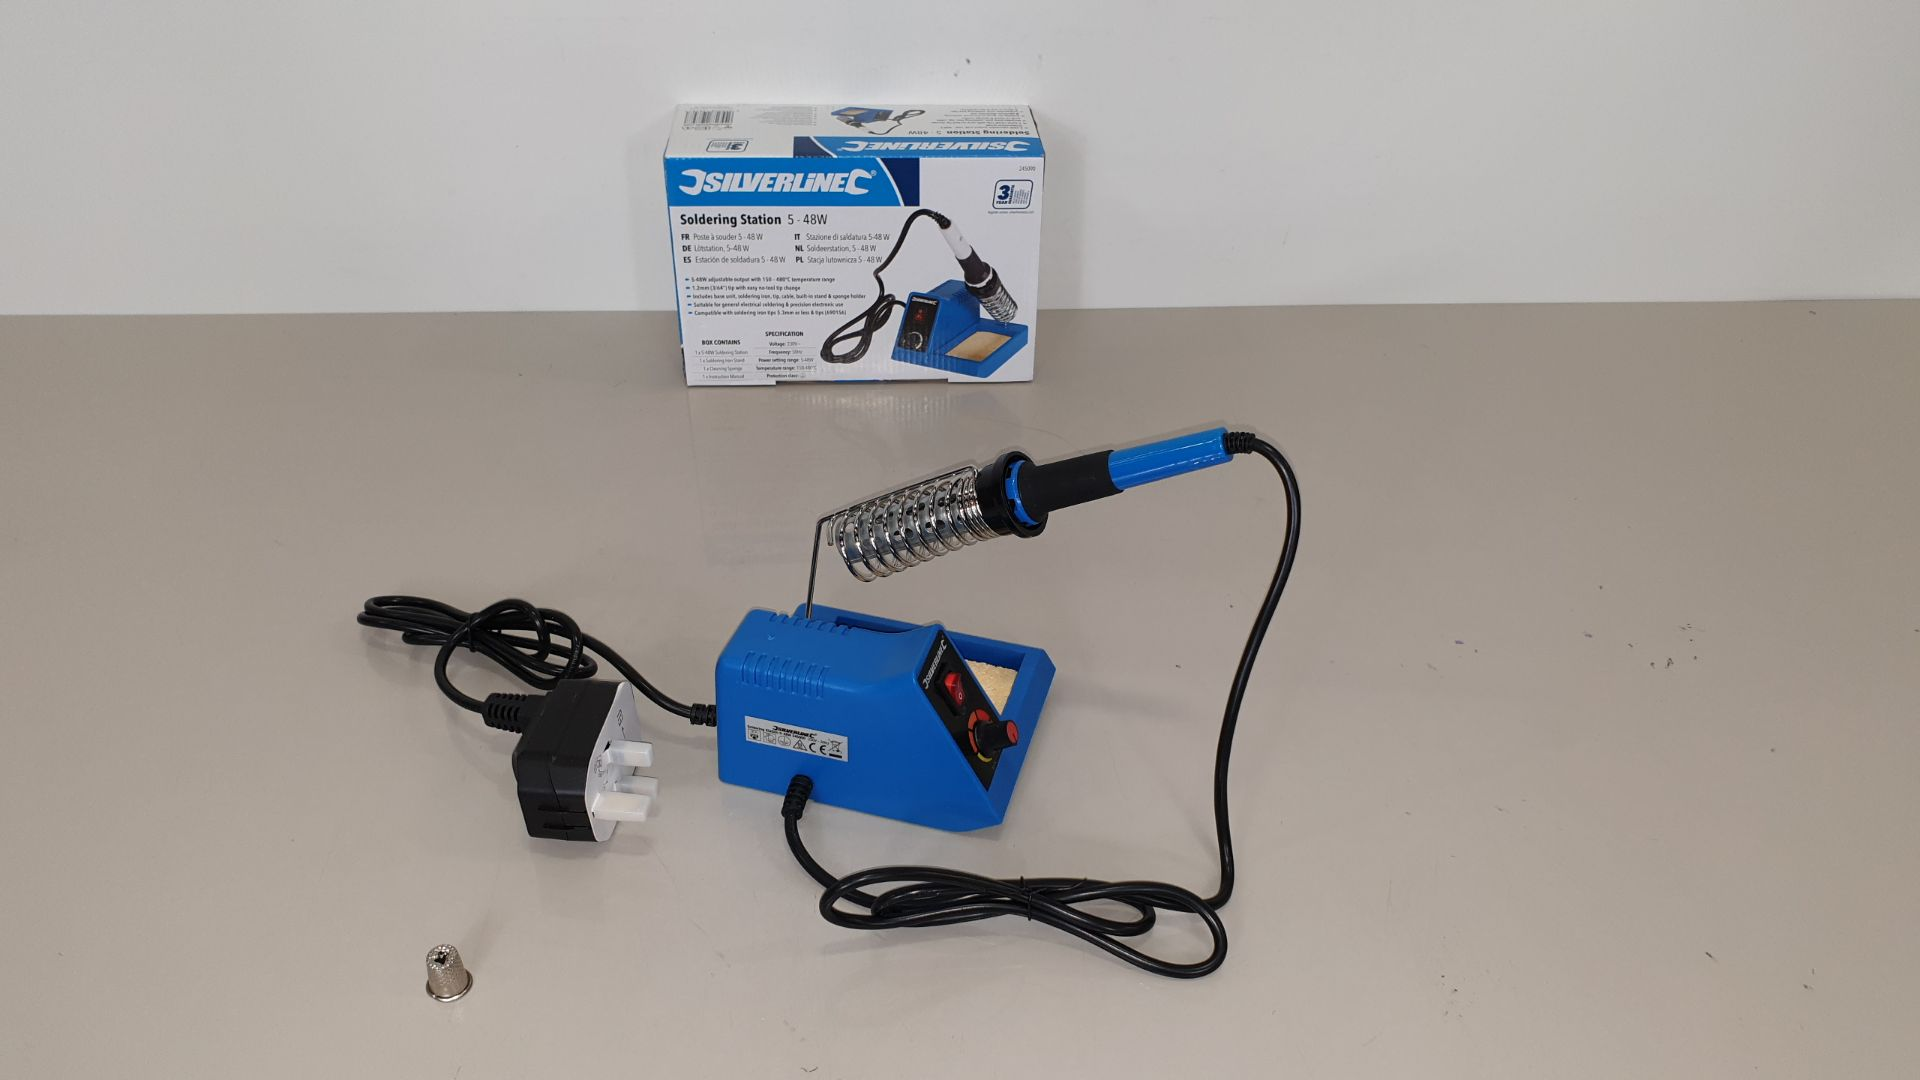 Lot 231 - 20 X BRAND NEW SILVERLINE SOLDERING STATIONS 5-48W (PROD CODE 245090) - TRADE PRICE £31.34 EACH (EXC